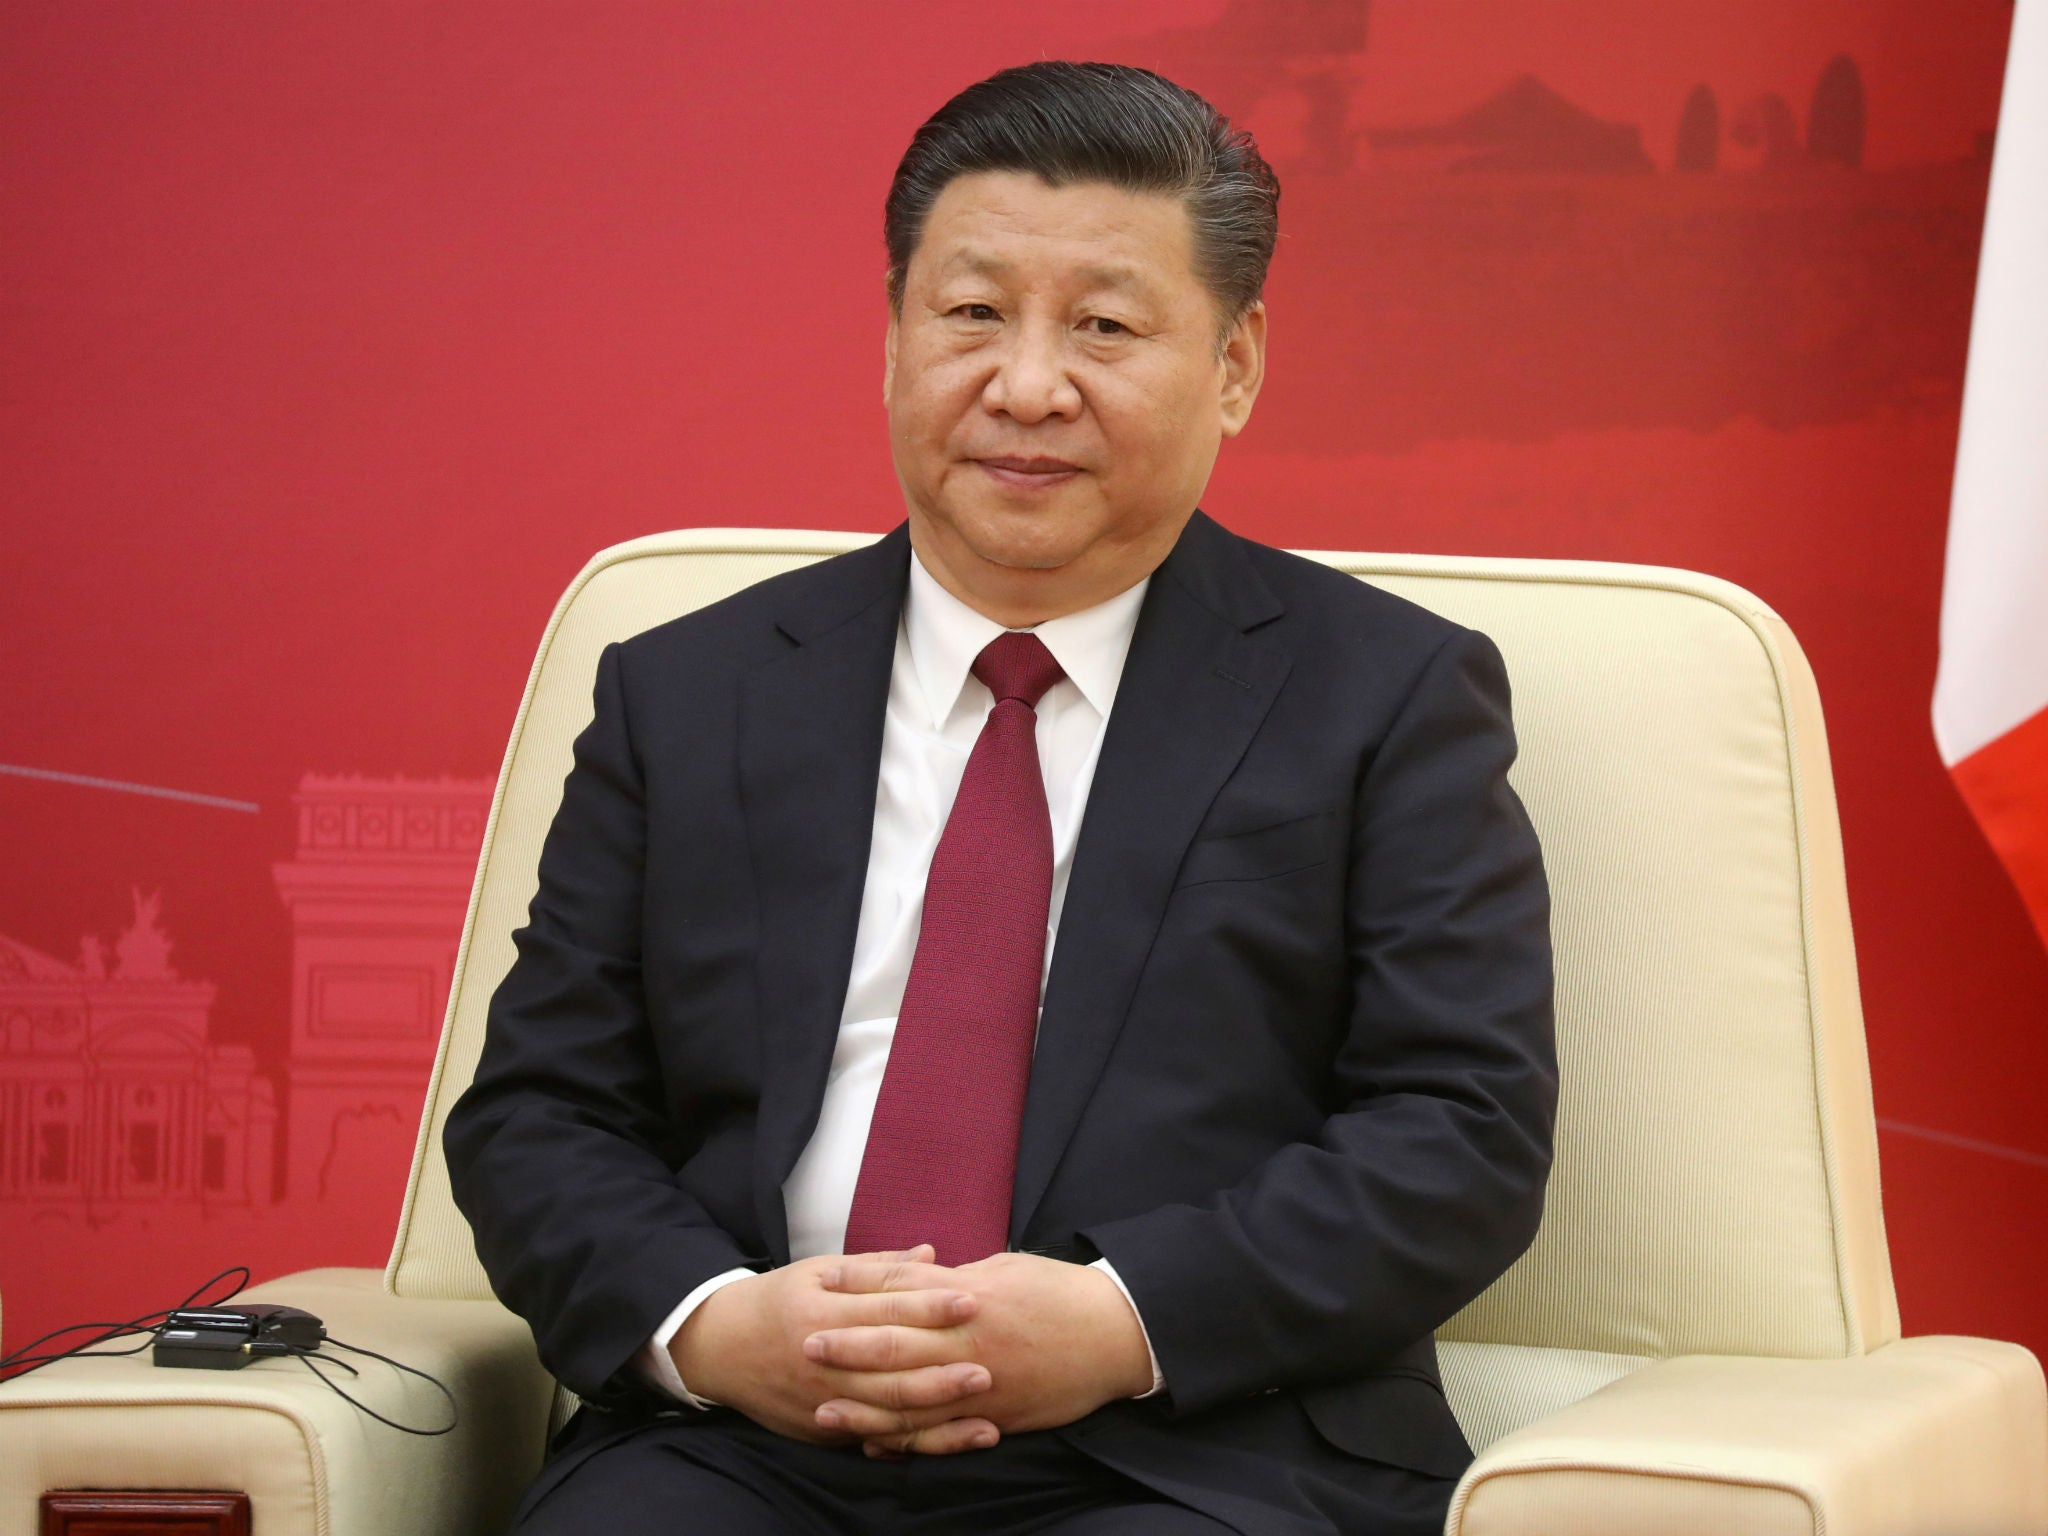 China Why Xi Jinping Decision Is World Superpower S Most Important Political Change For Decades The Independent The Independent